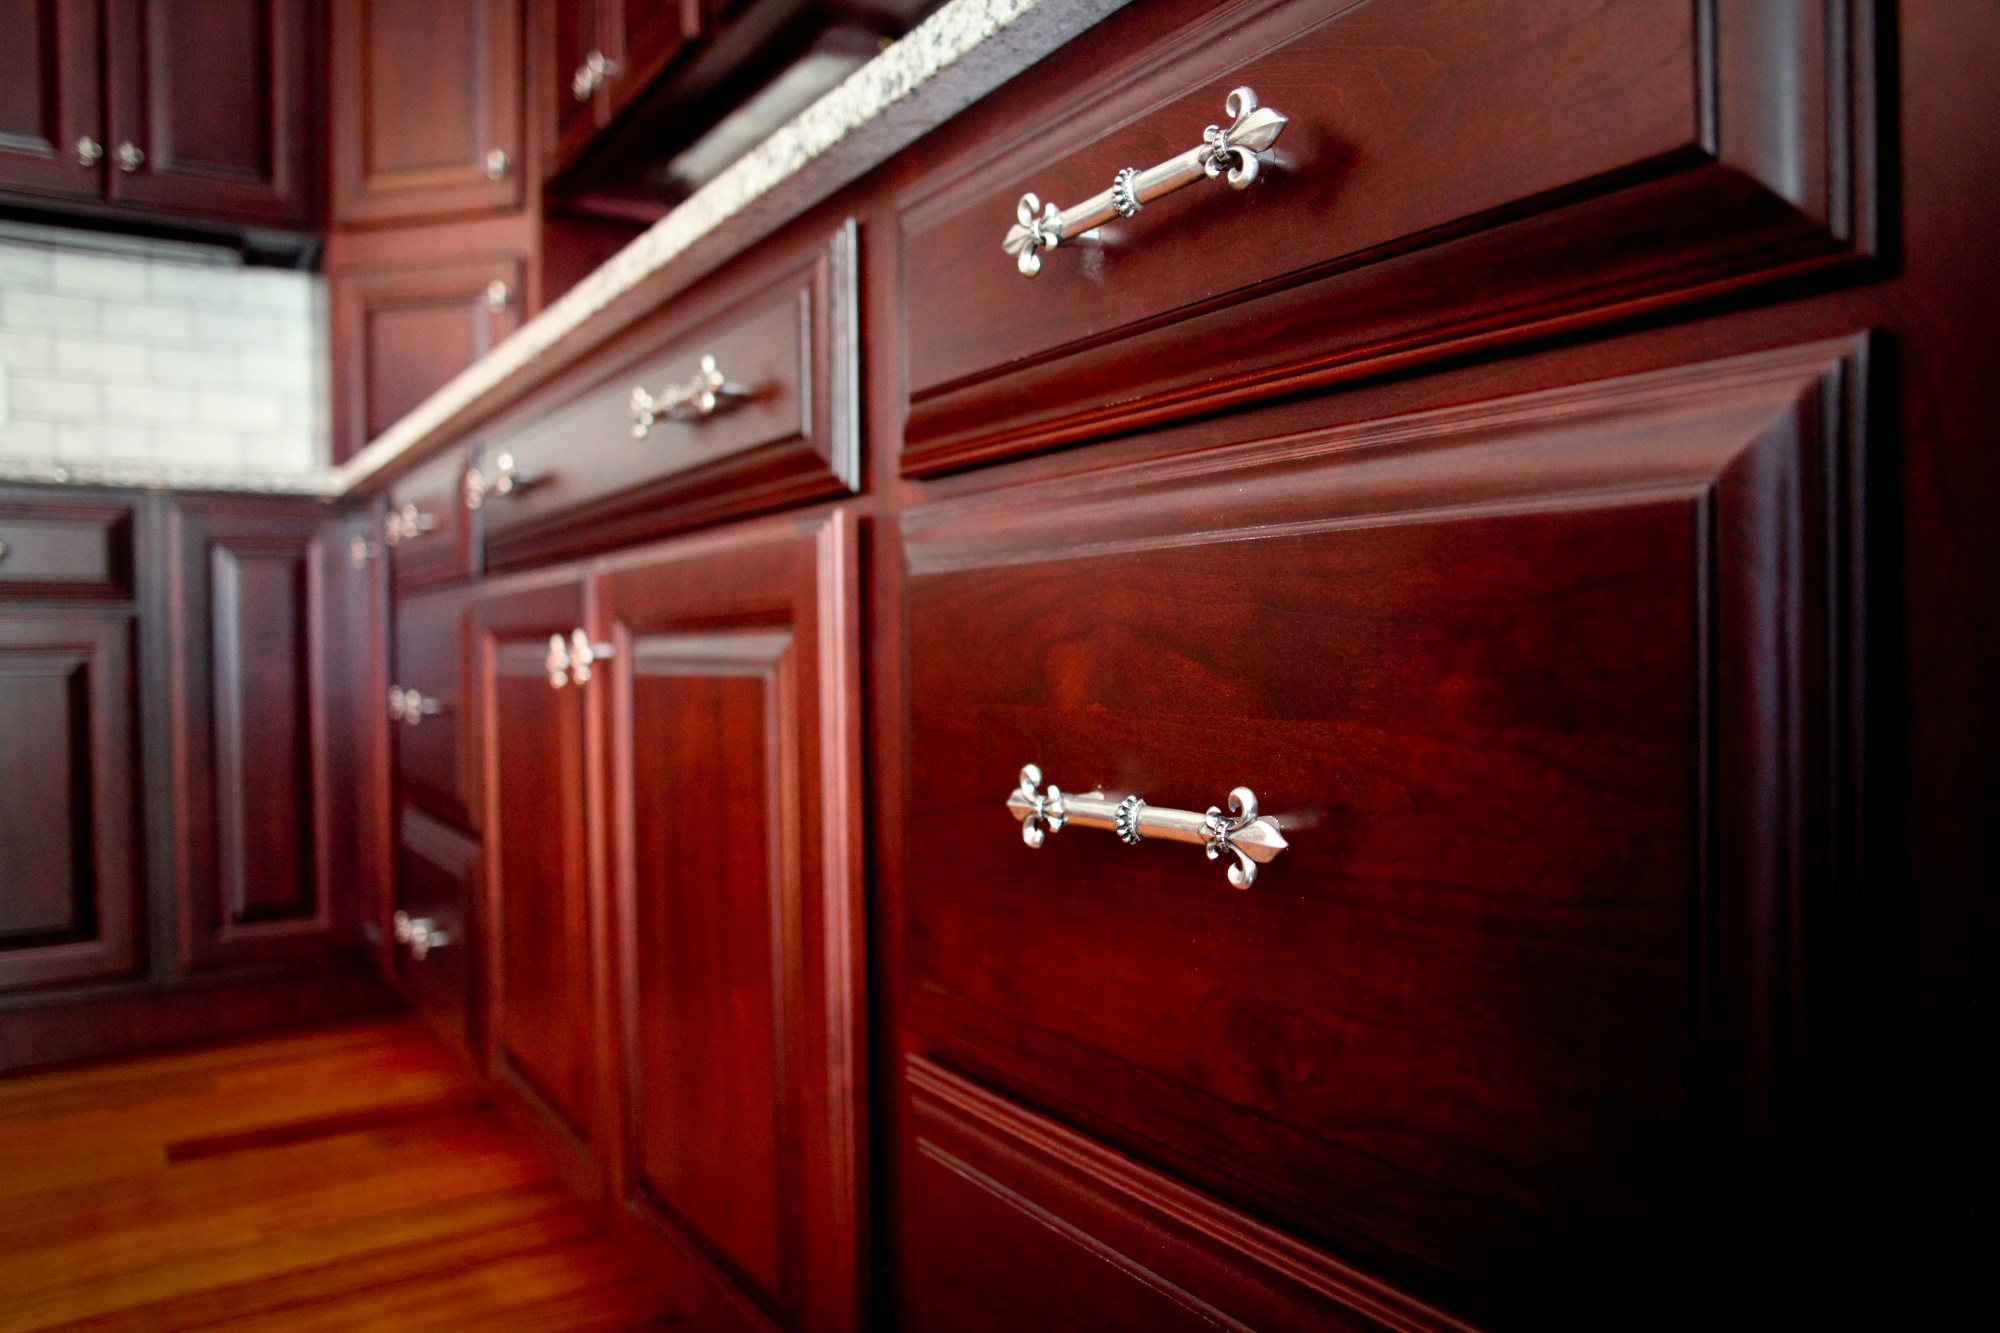 Cabinet Hardware Options